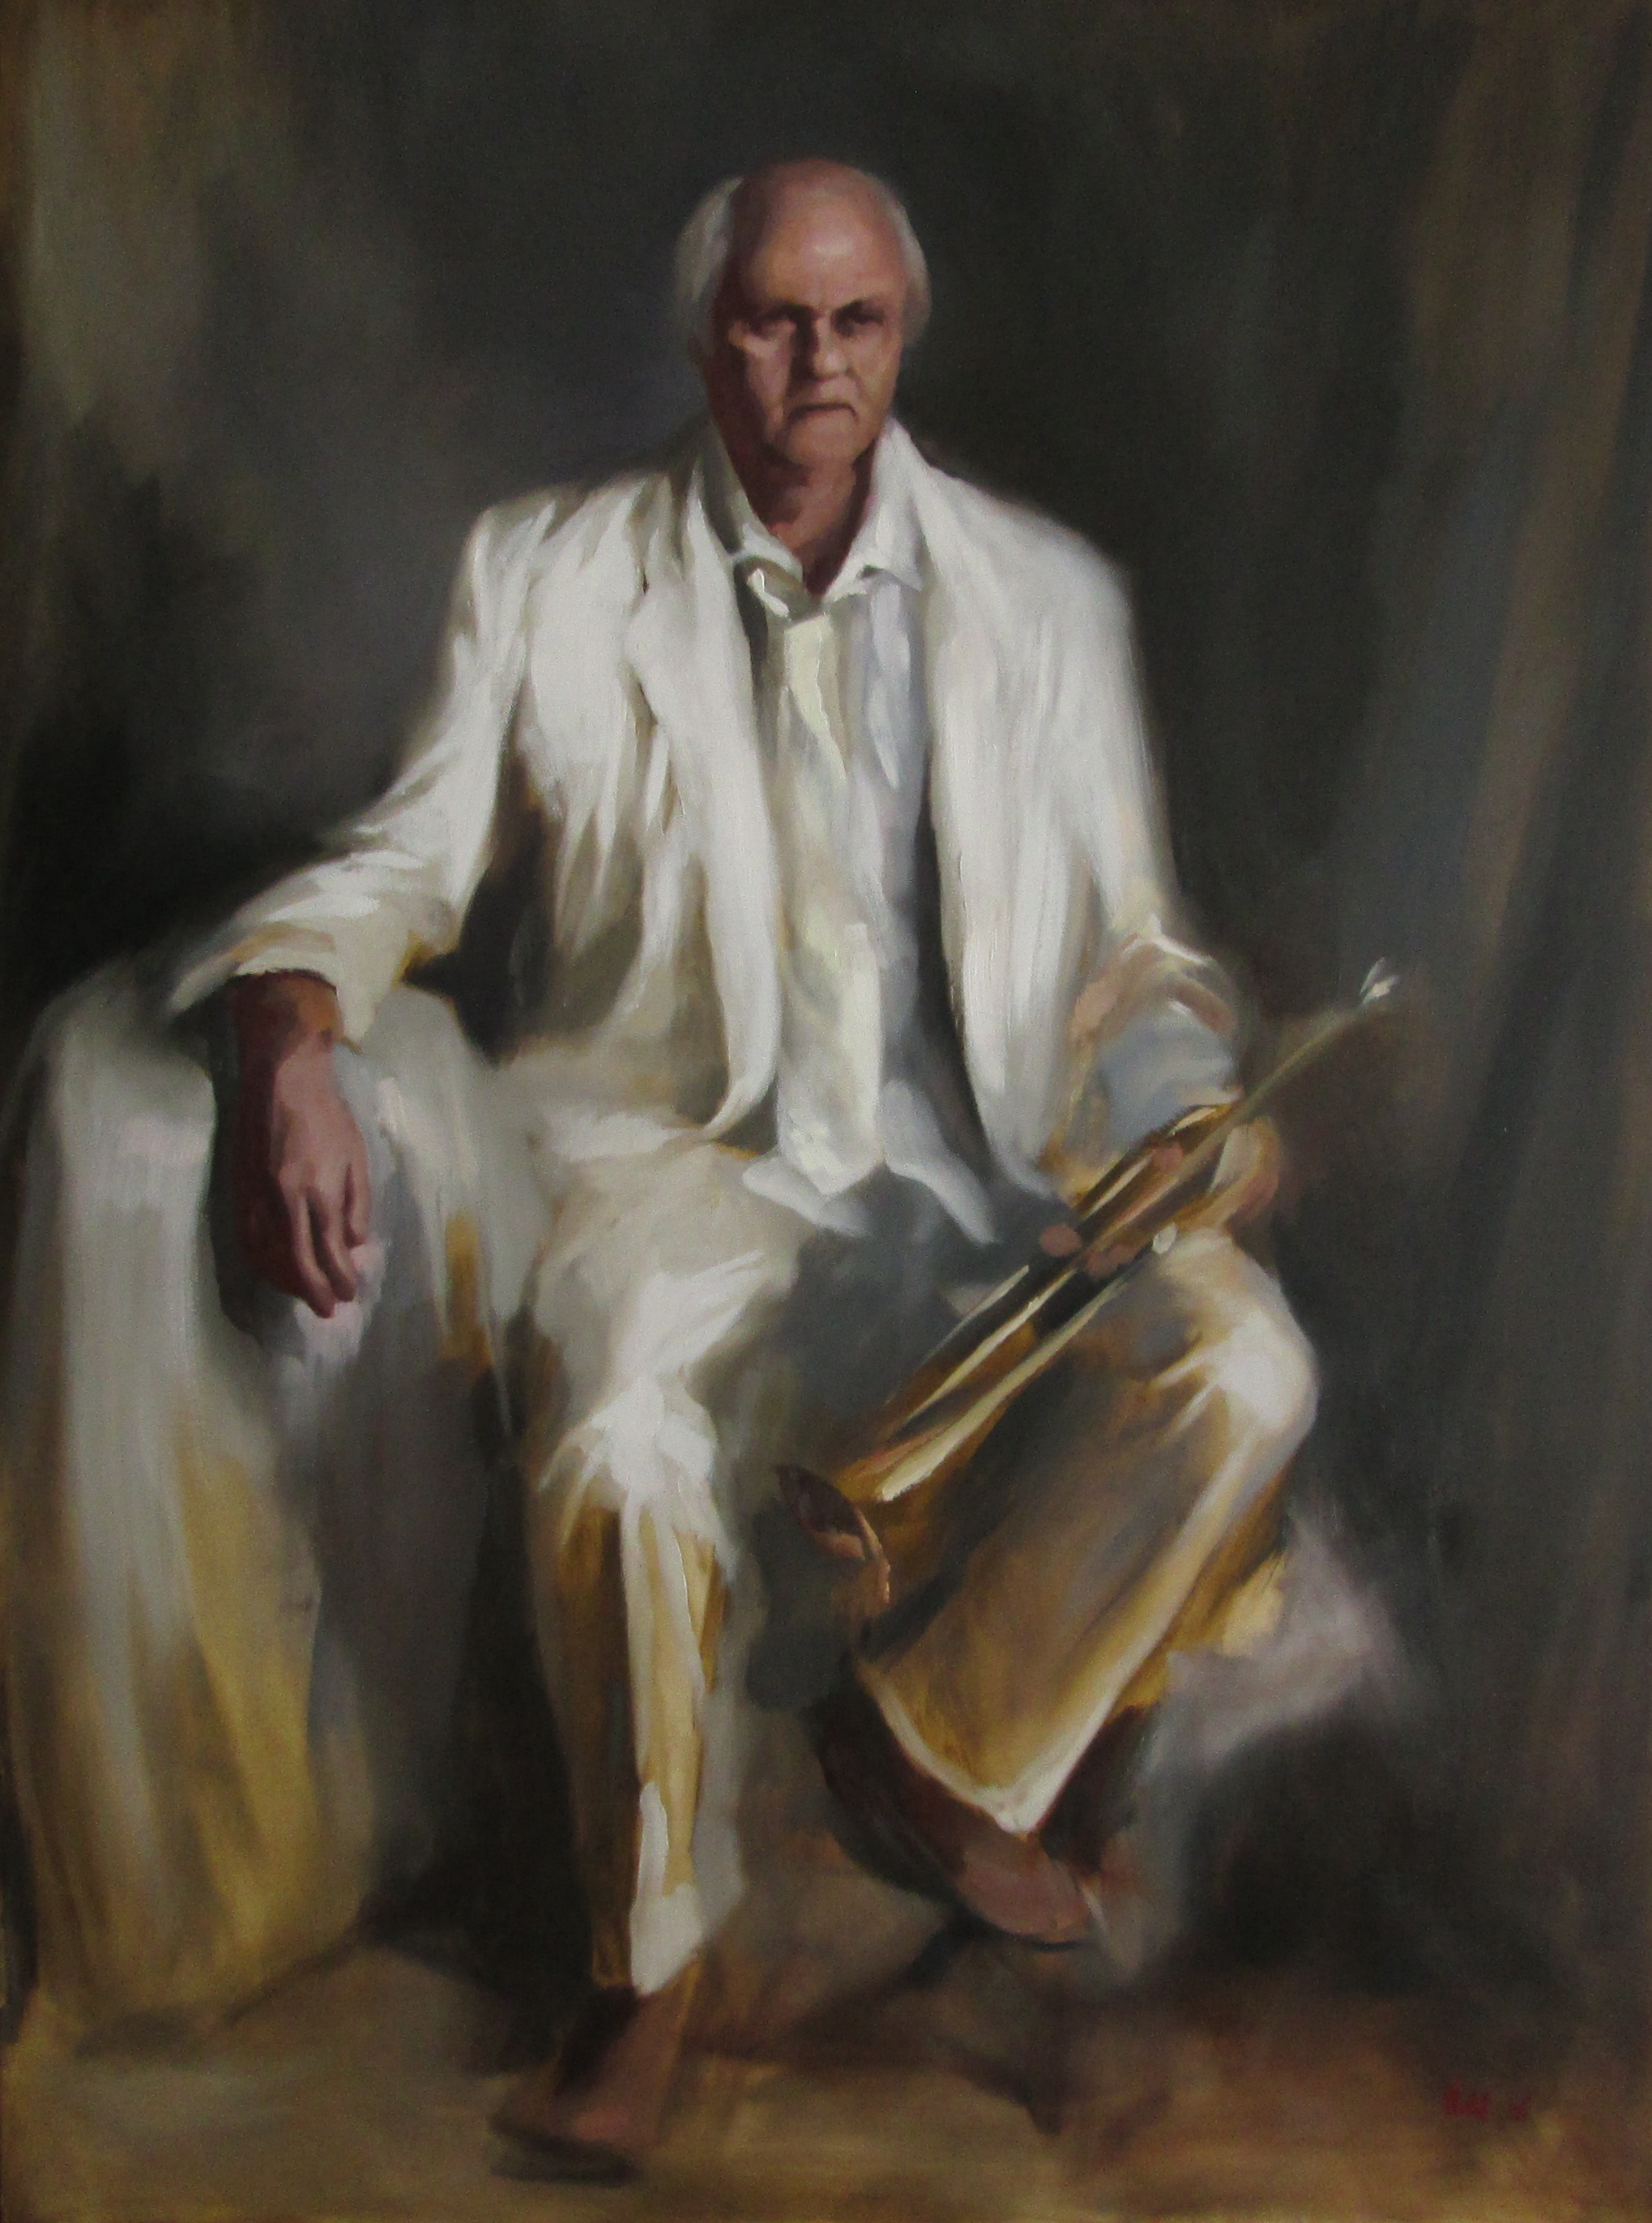 THE MUSICIAN(sold)